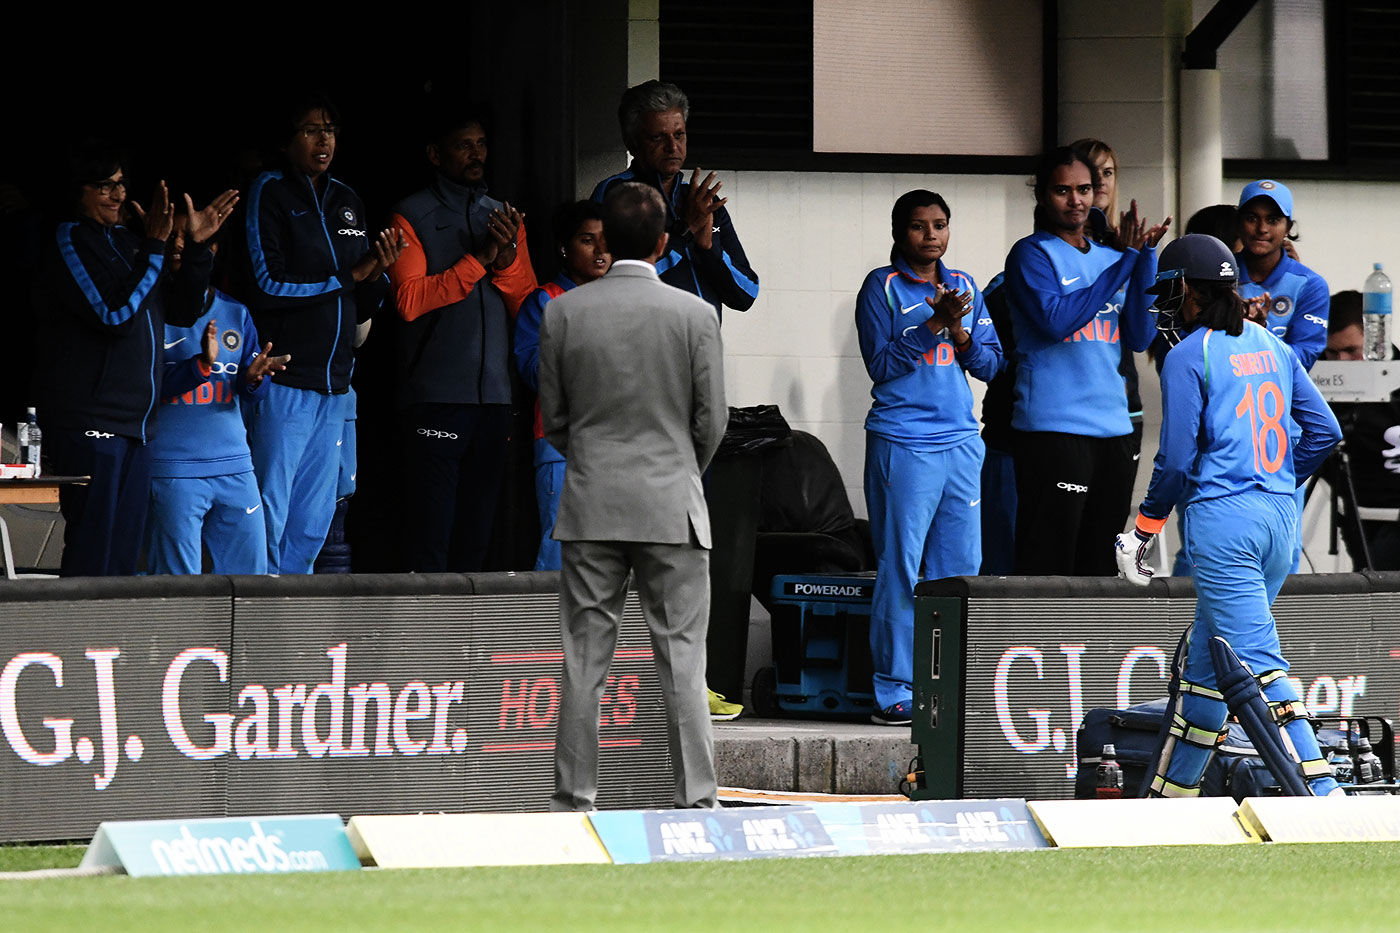 Mandhana's team-mates cheer after she comes back having made a century in the Napier ODI earlier this year